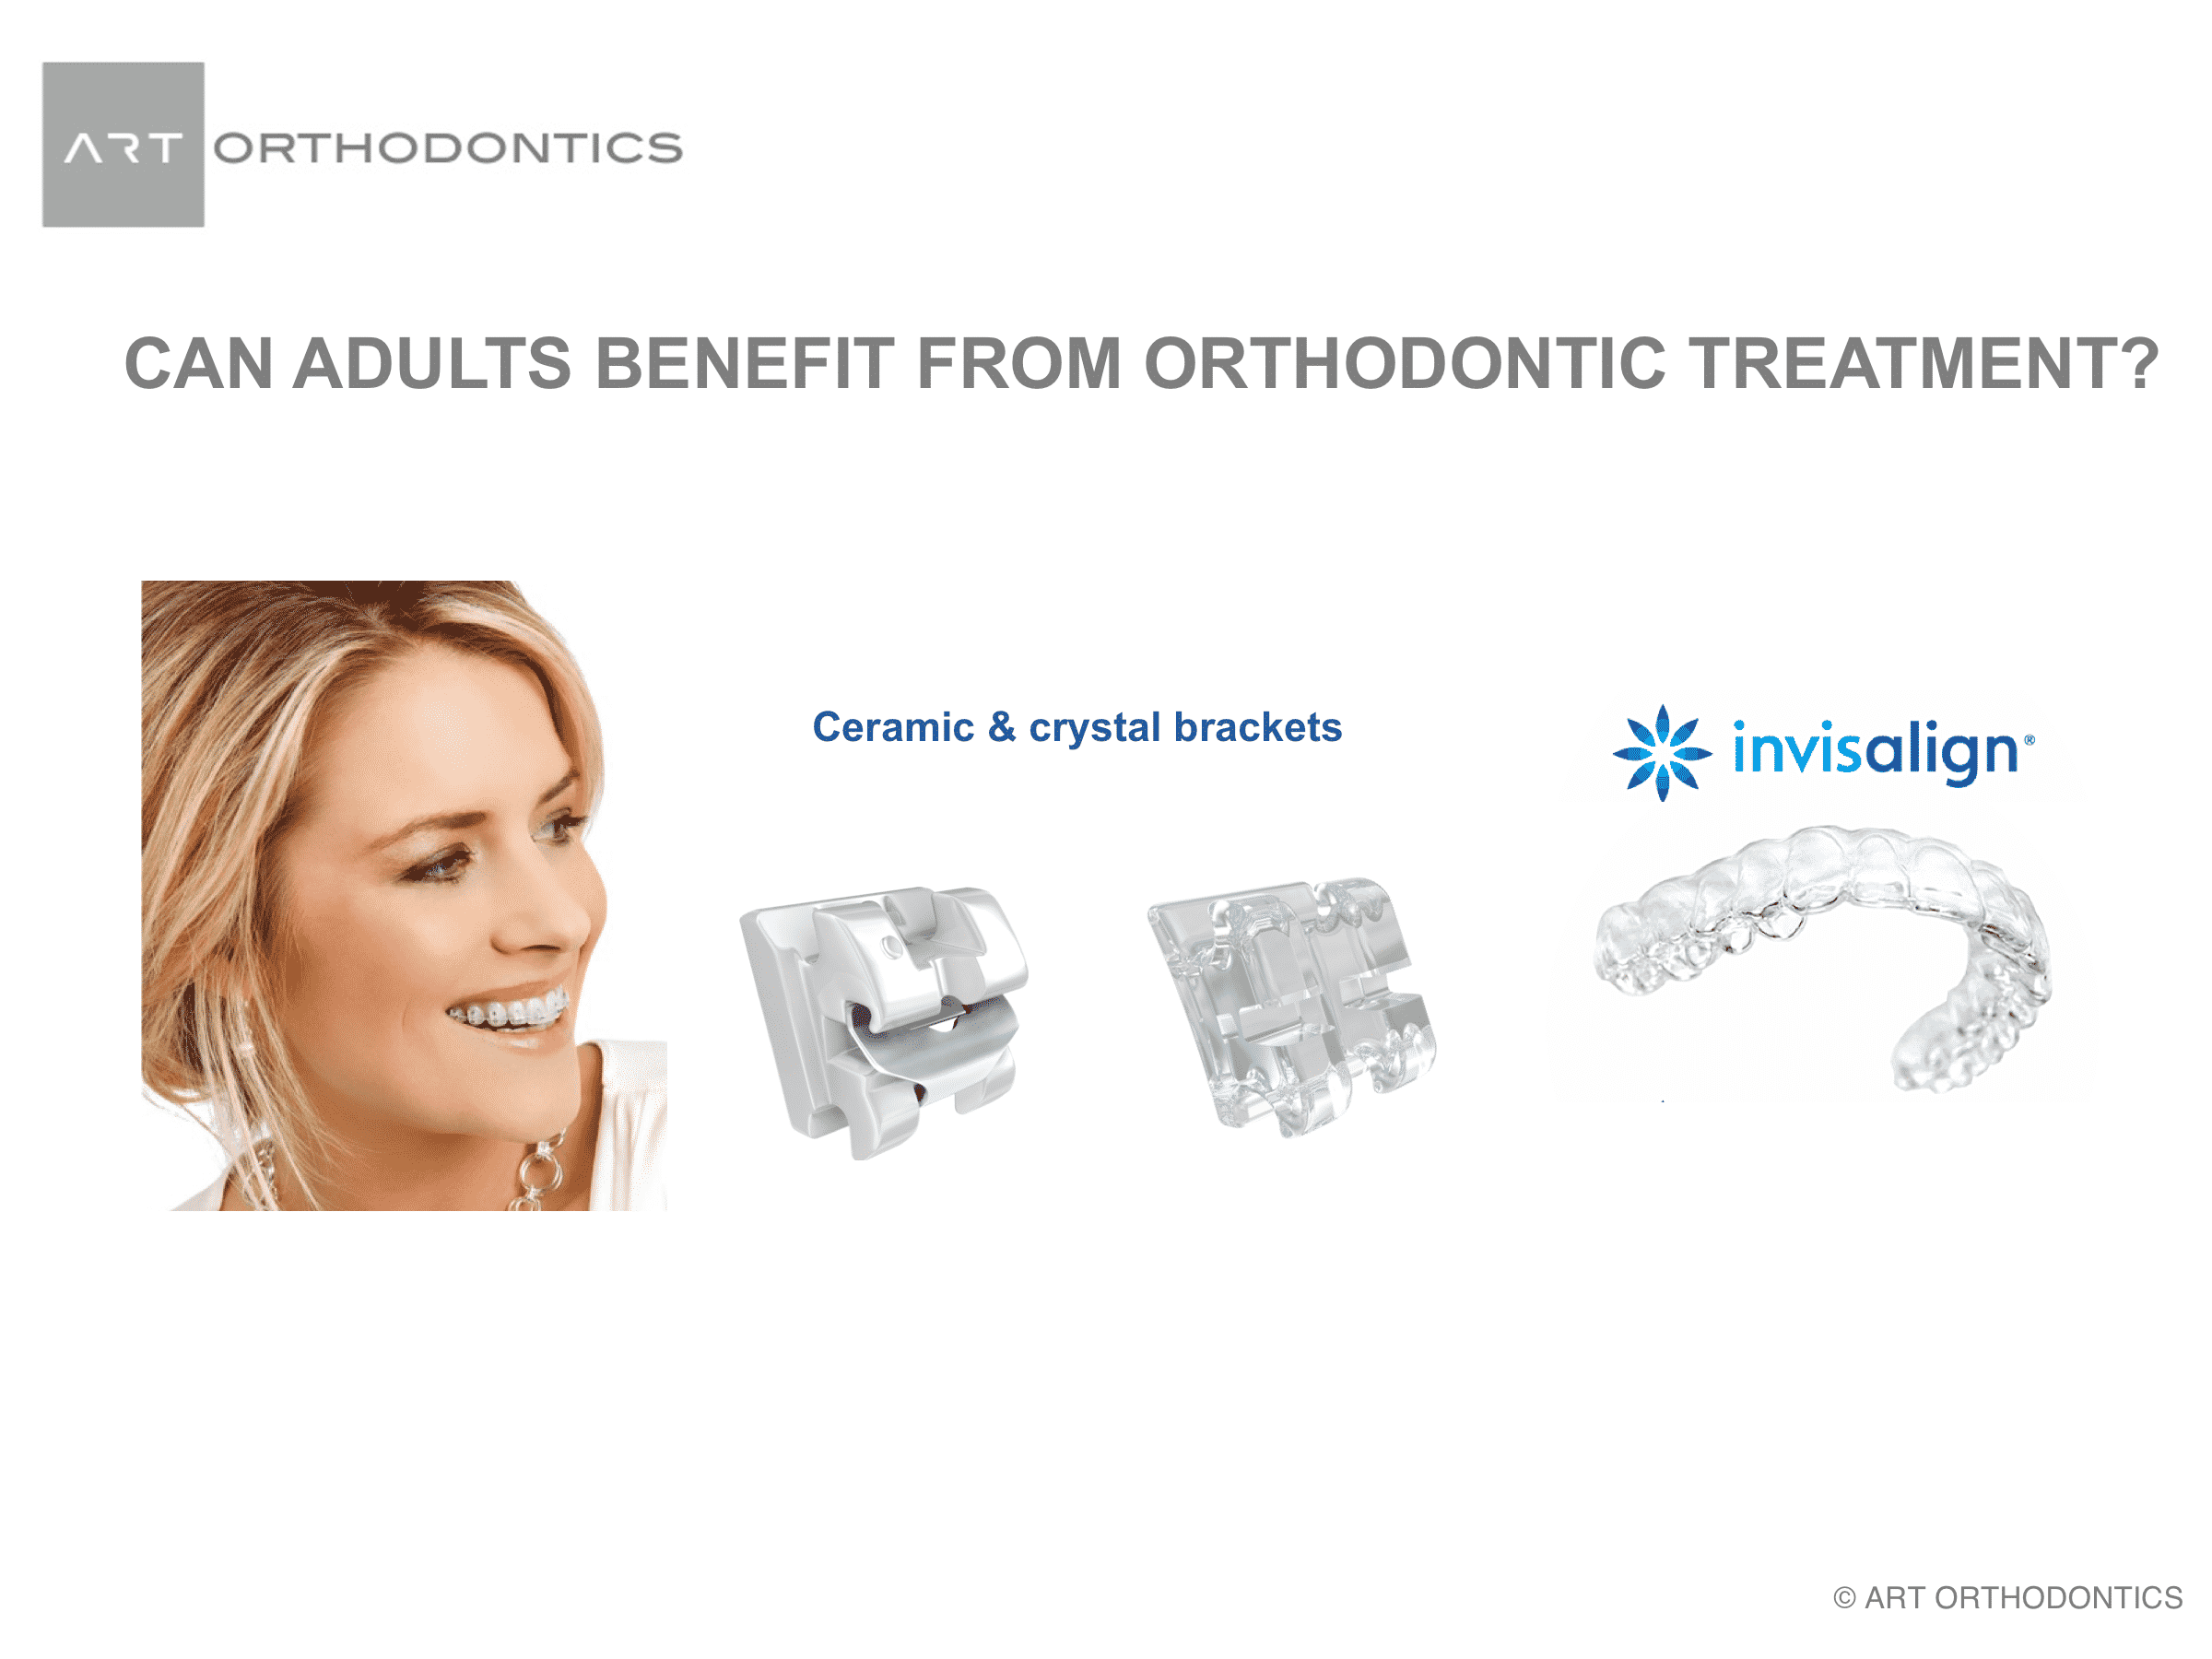 Clear braces and invisalign for adult patients treatment